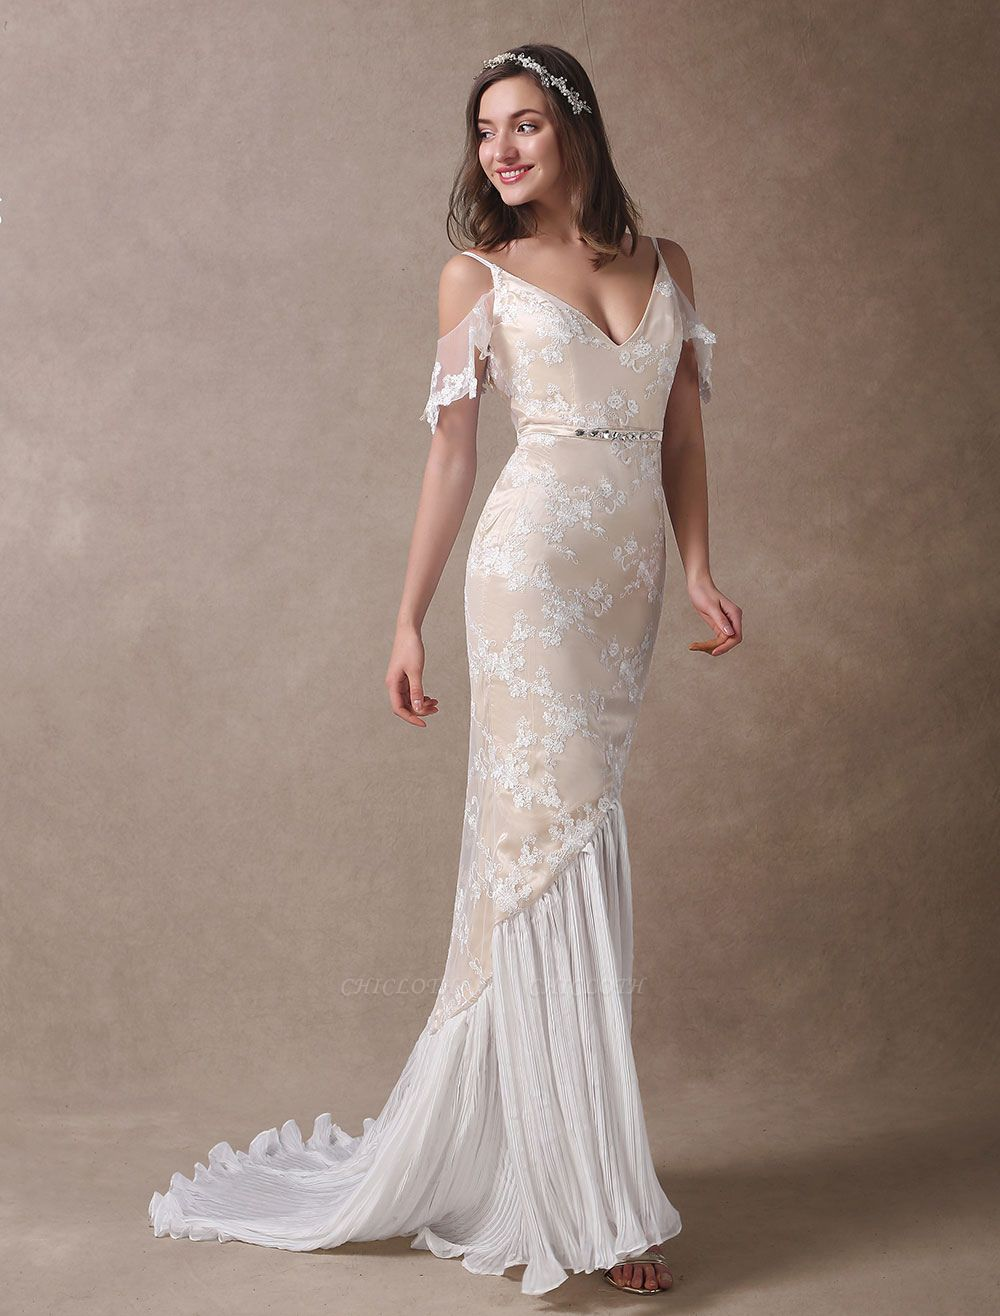 Boho Bridal Dresses Champagne Lace Beach Bridal Dress Mermaid V Neck Backless Beaded Summer Wedding Gowns Exclusive